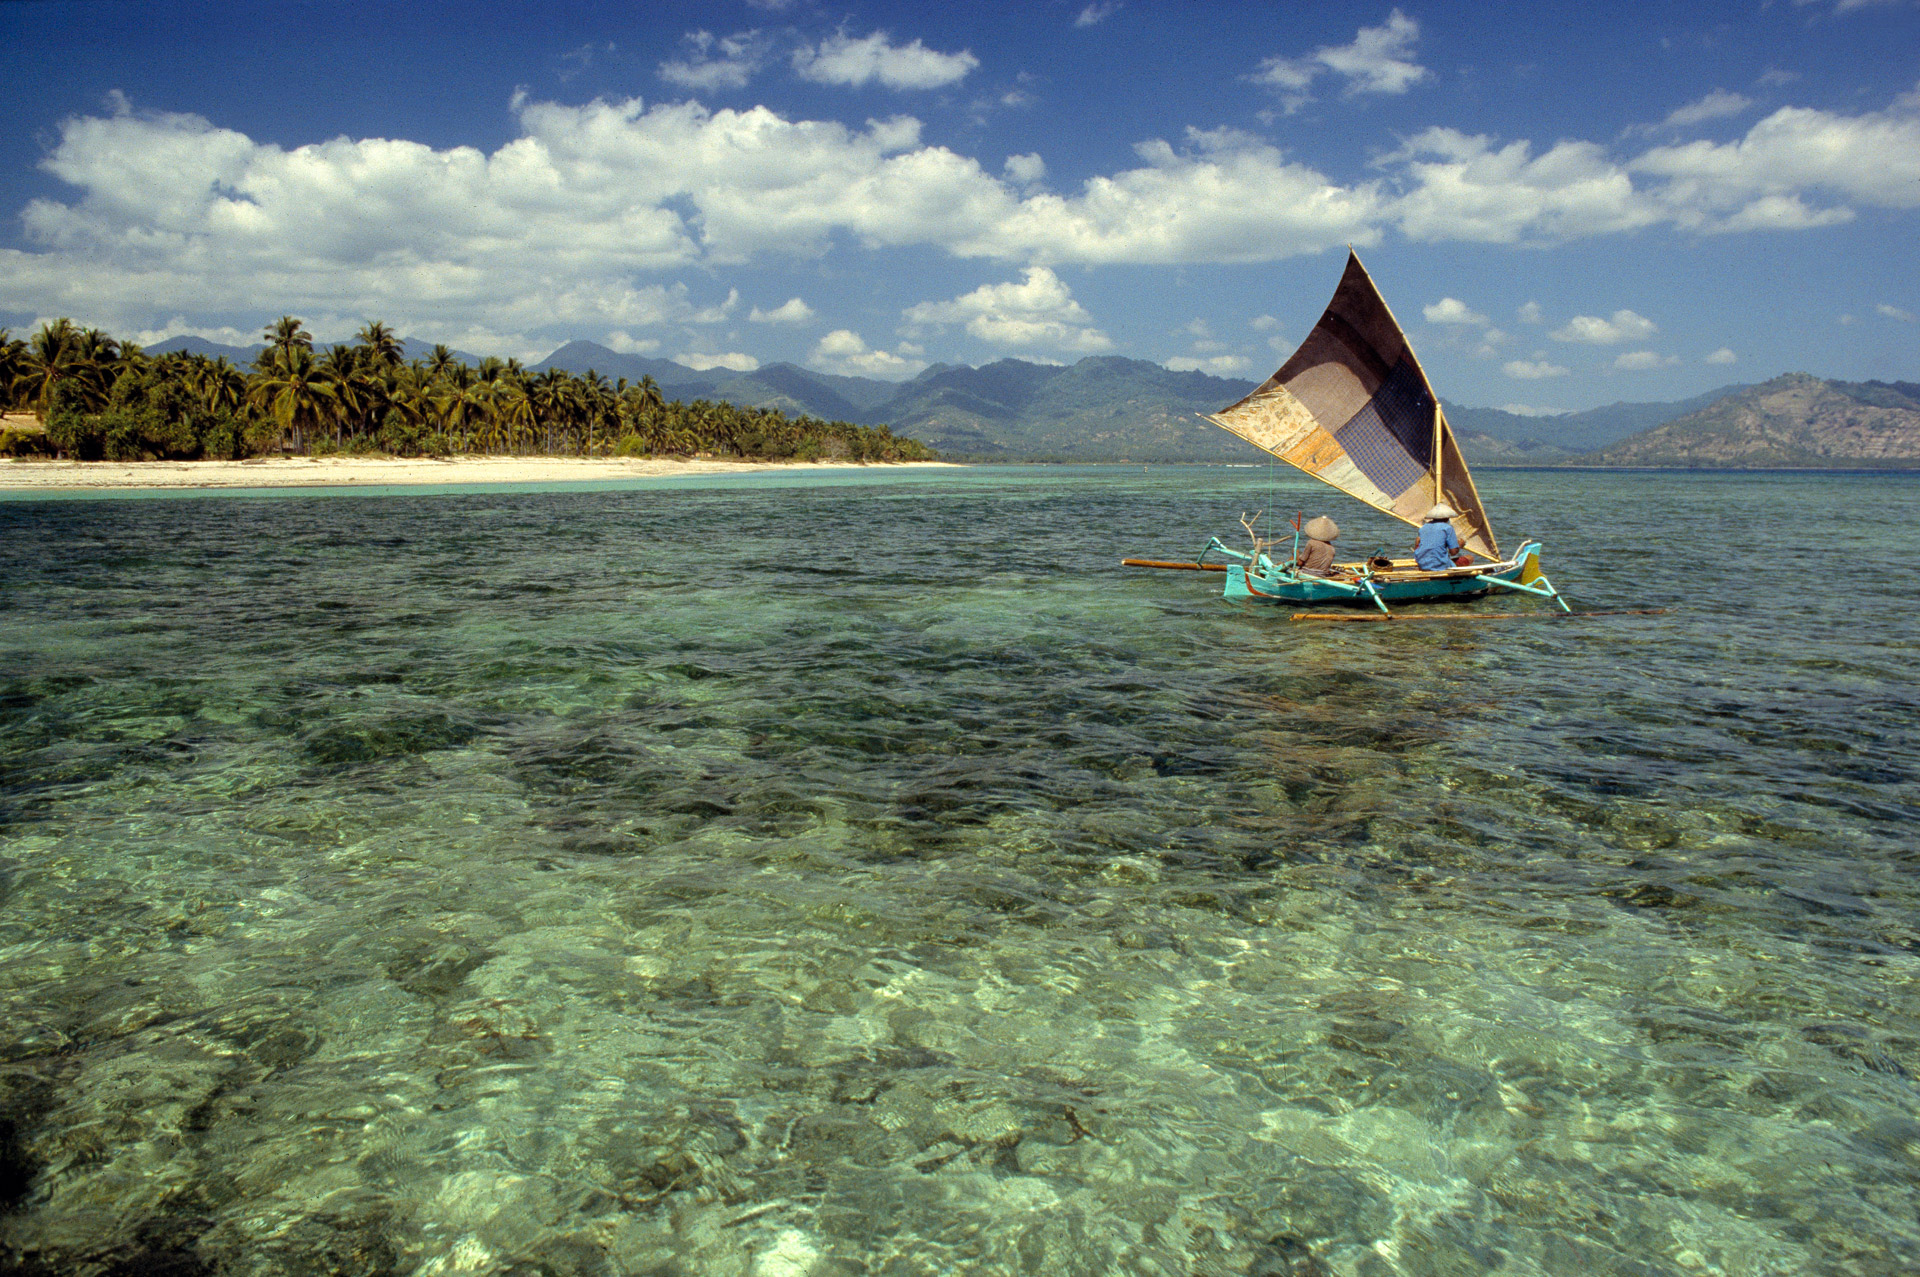 A dugout canoe sail across the clear sea off Gili Air while Lombok is seen in the horizon